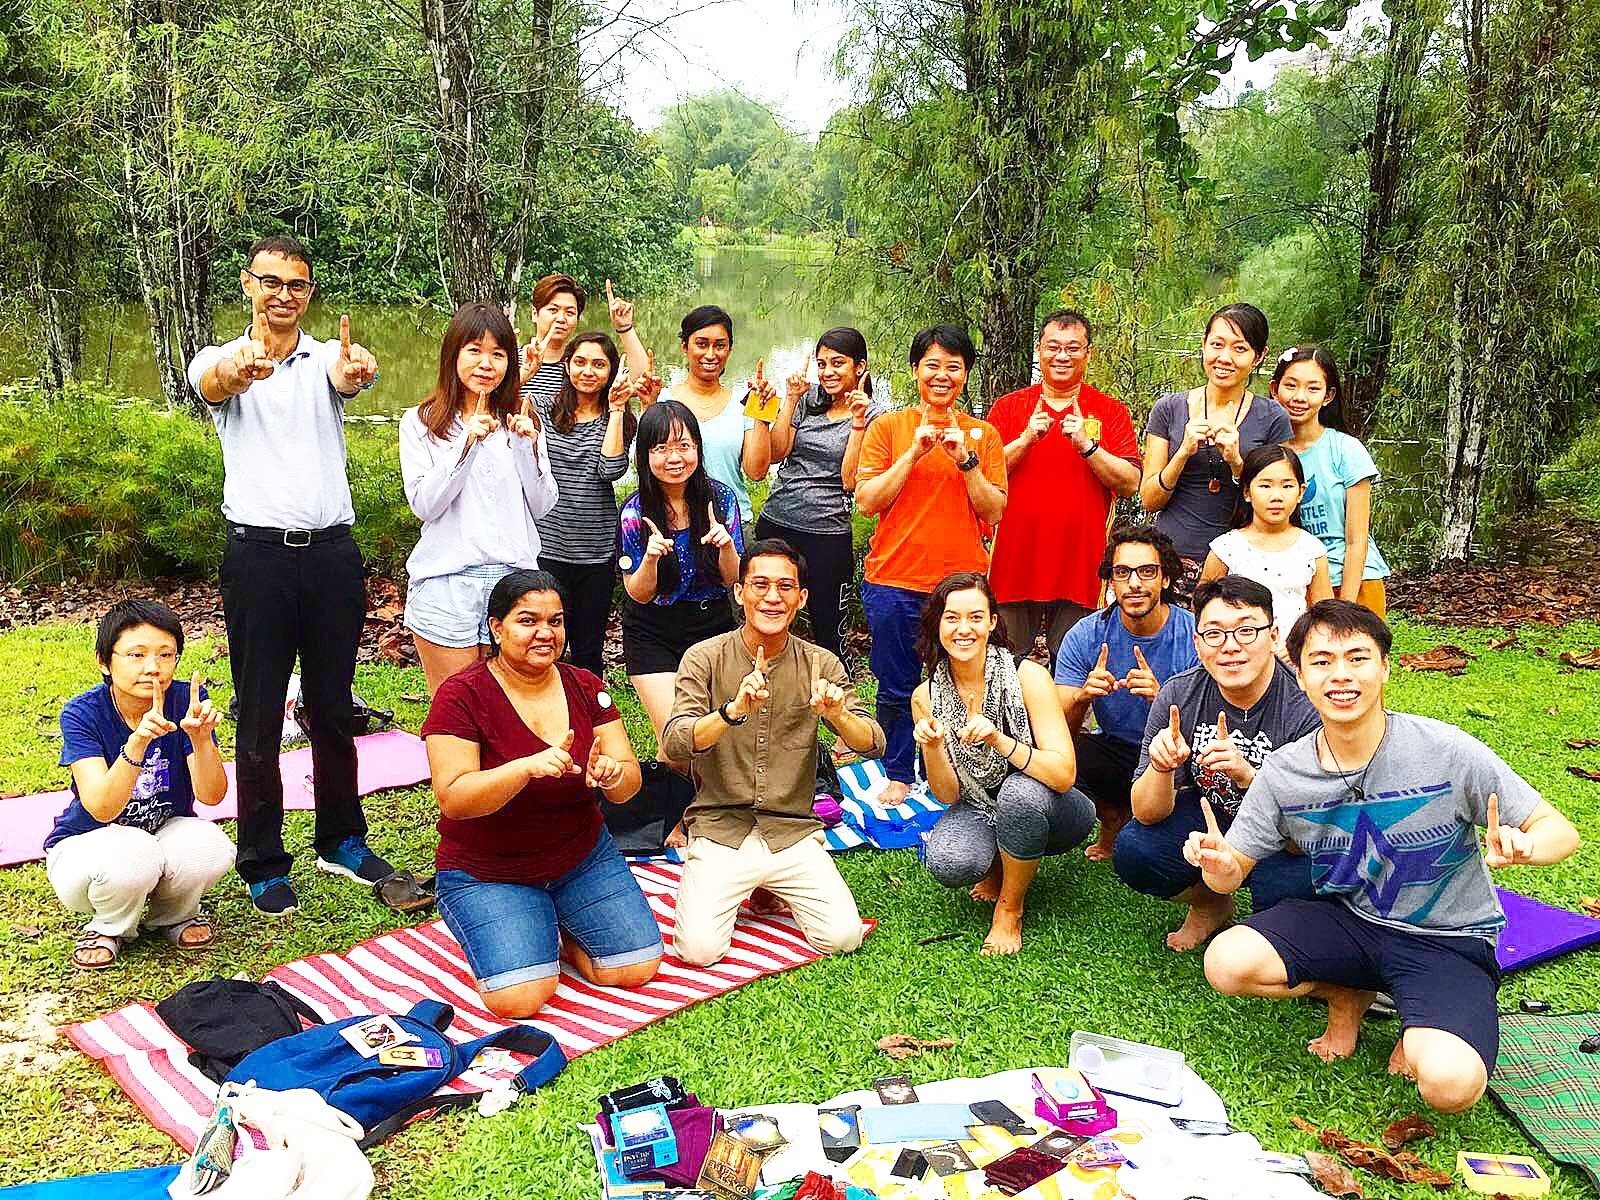 11/11/2018 Meditation Circle & Potluck Picnic